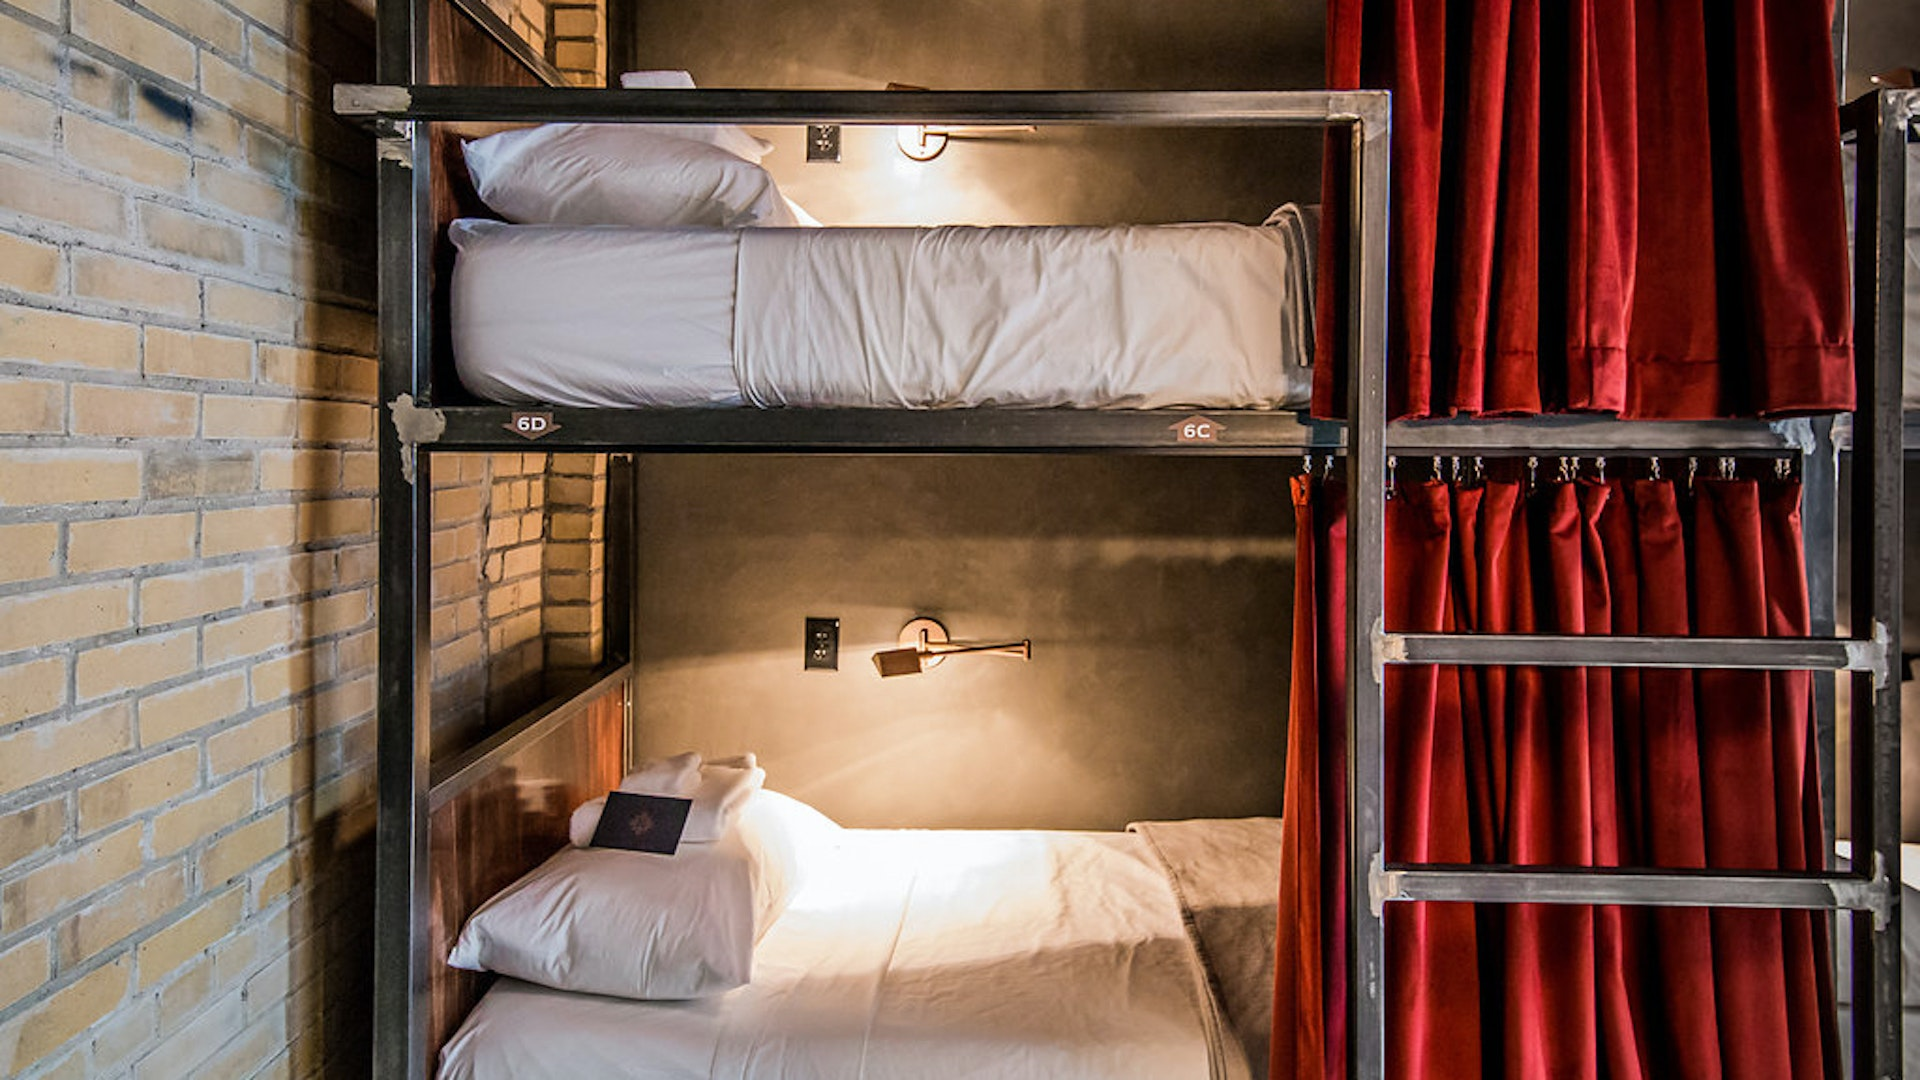 Bunk-style beds include privacy curtains, power outlets, and a reading lamp.